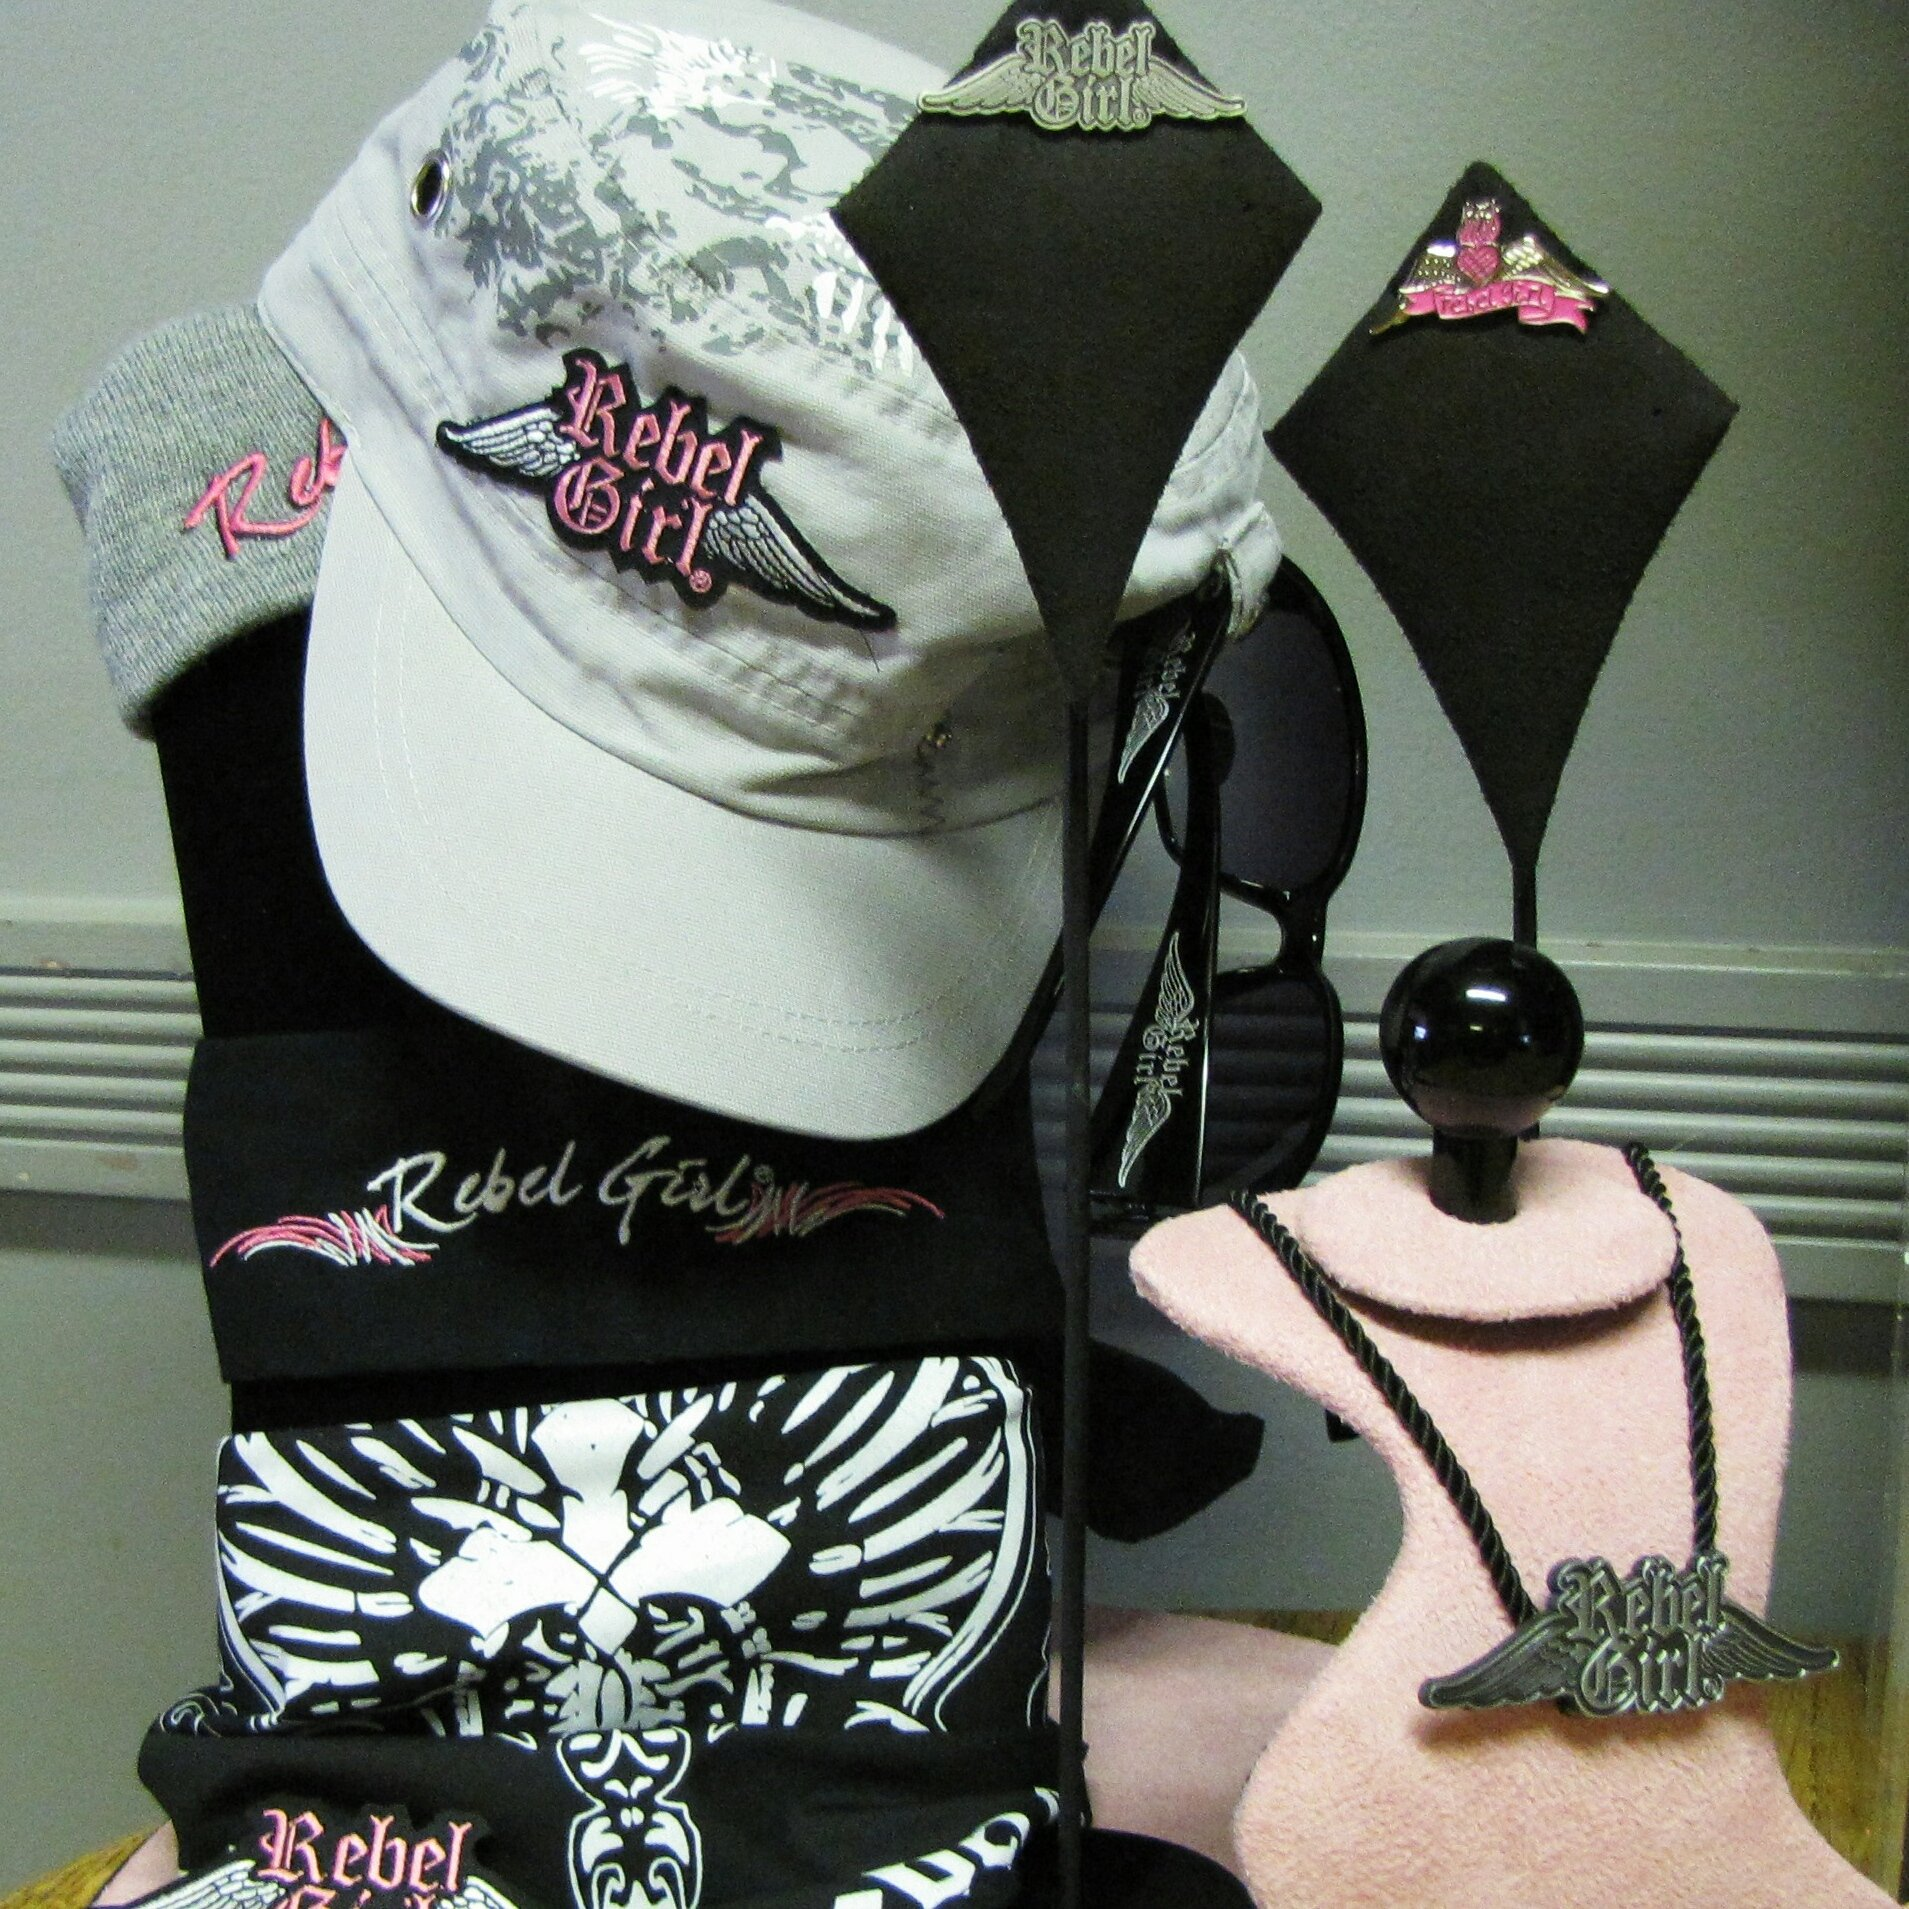 Accessories from Rebel Girl